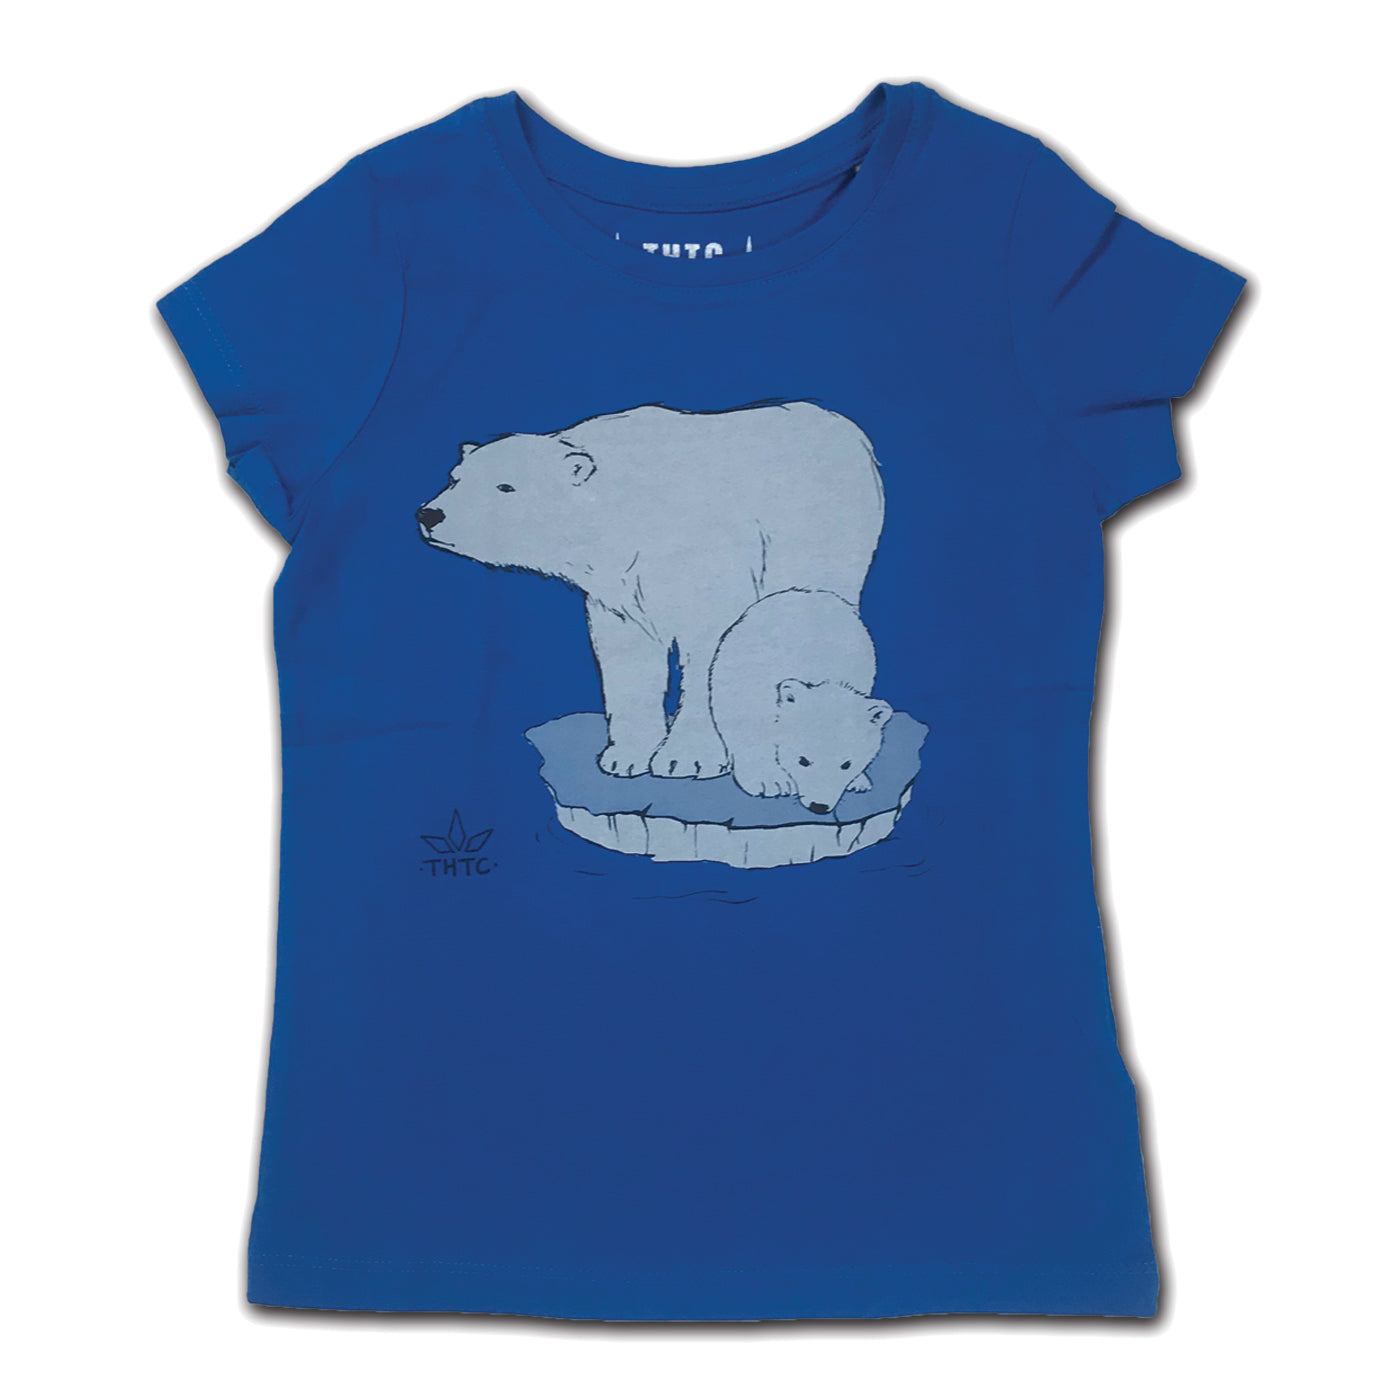 Solar Bears - THTC Organic Hemp T-Shirt (Kids)